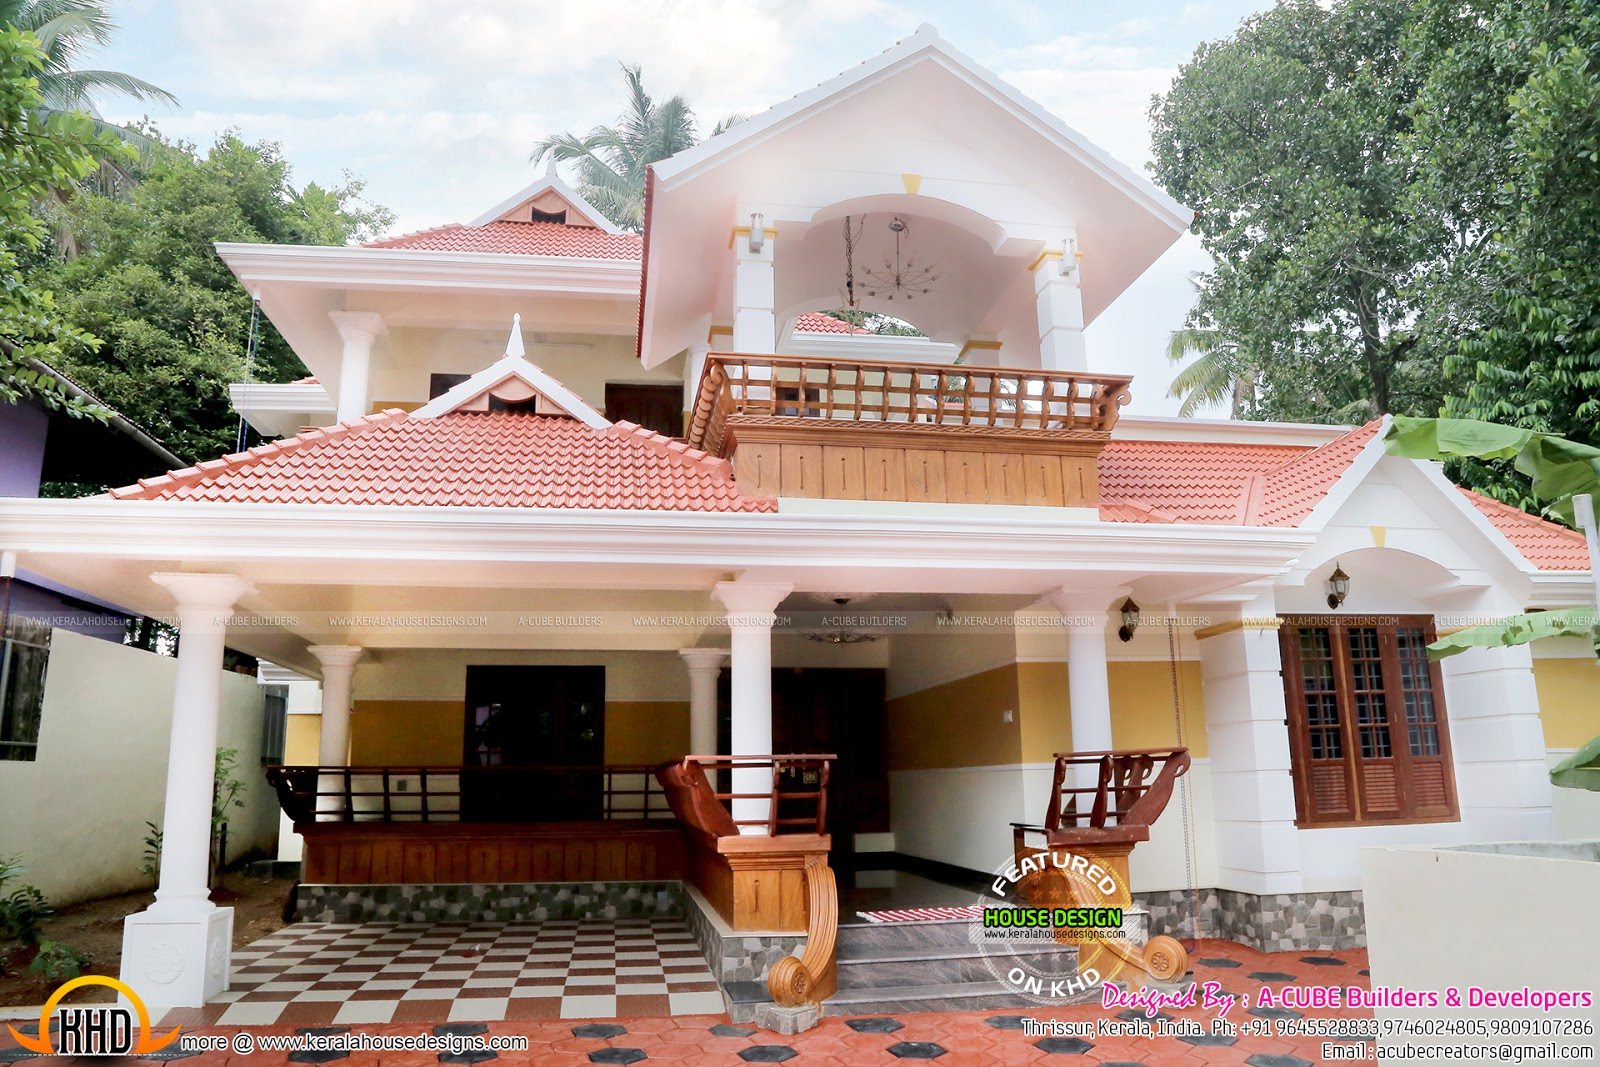 Beautiful work finished house in kerala kerala home design and floor plans - Kerala beautiful house ...